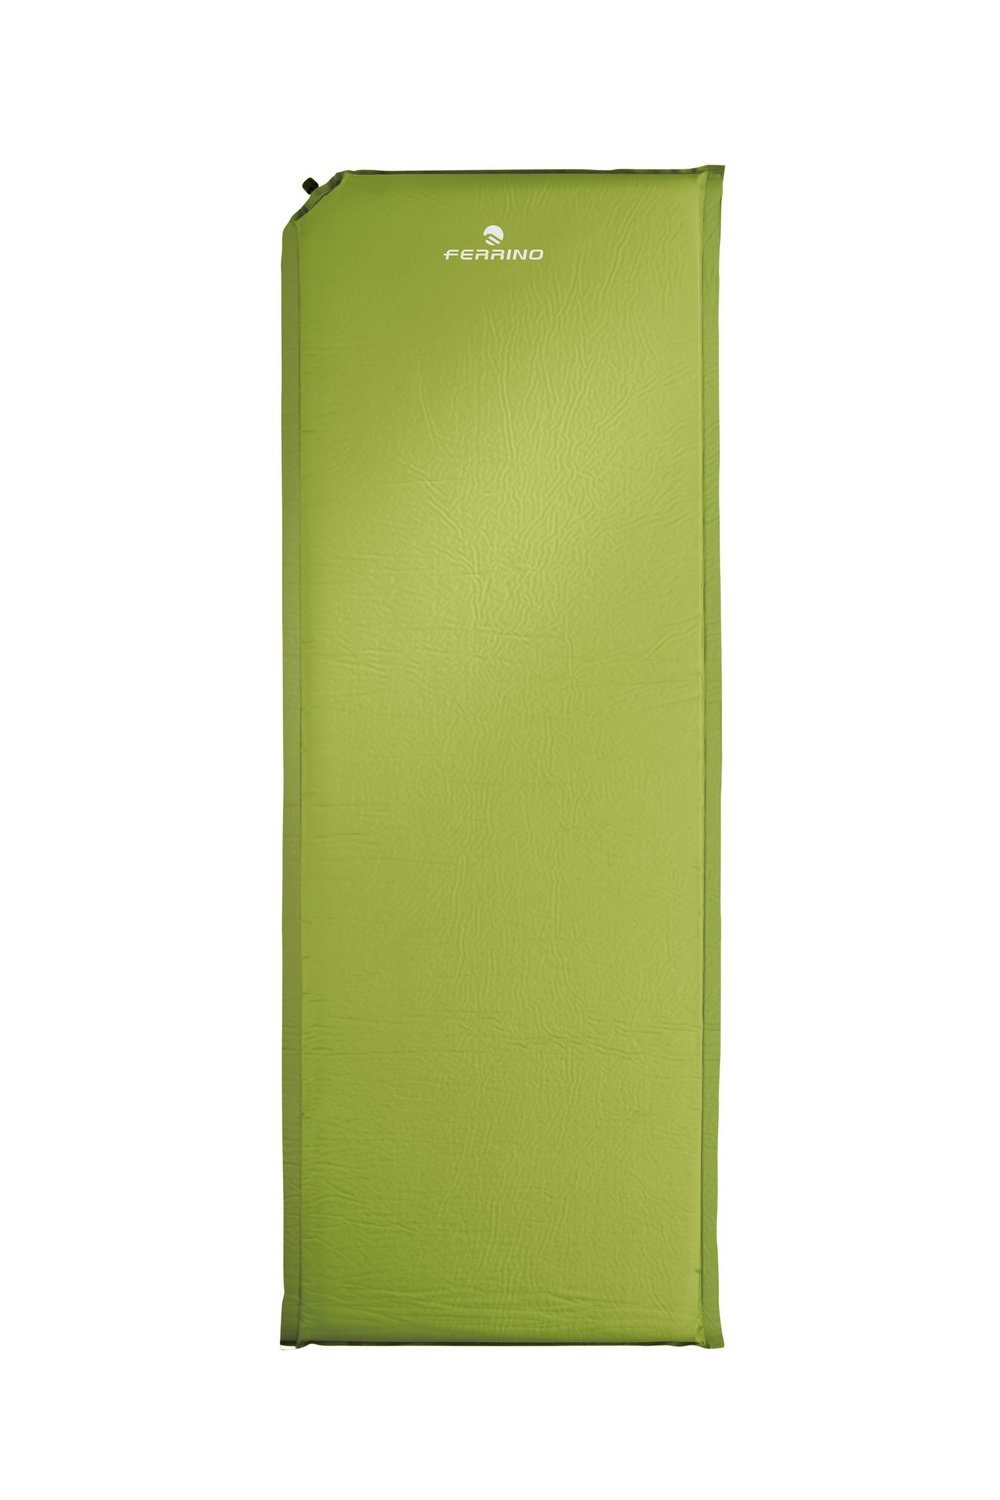 Ferrino Dream Mat 183x60x5 - Verde